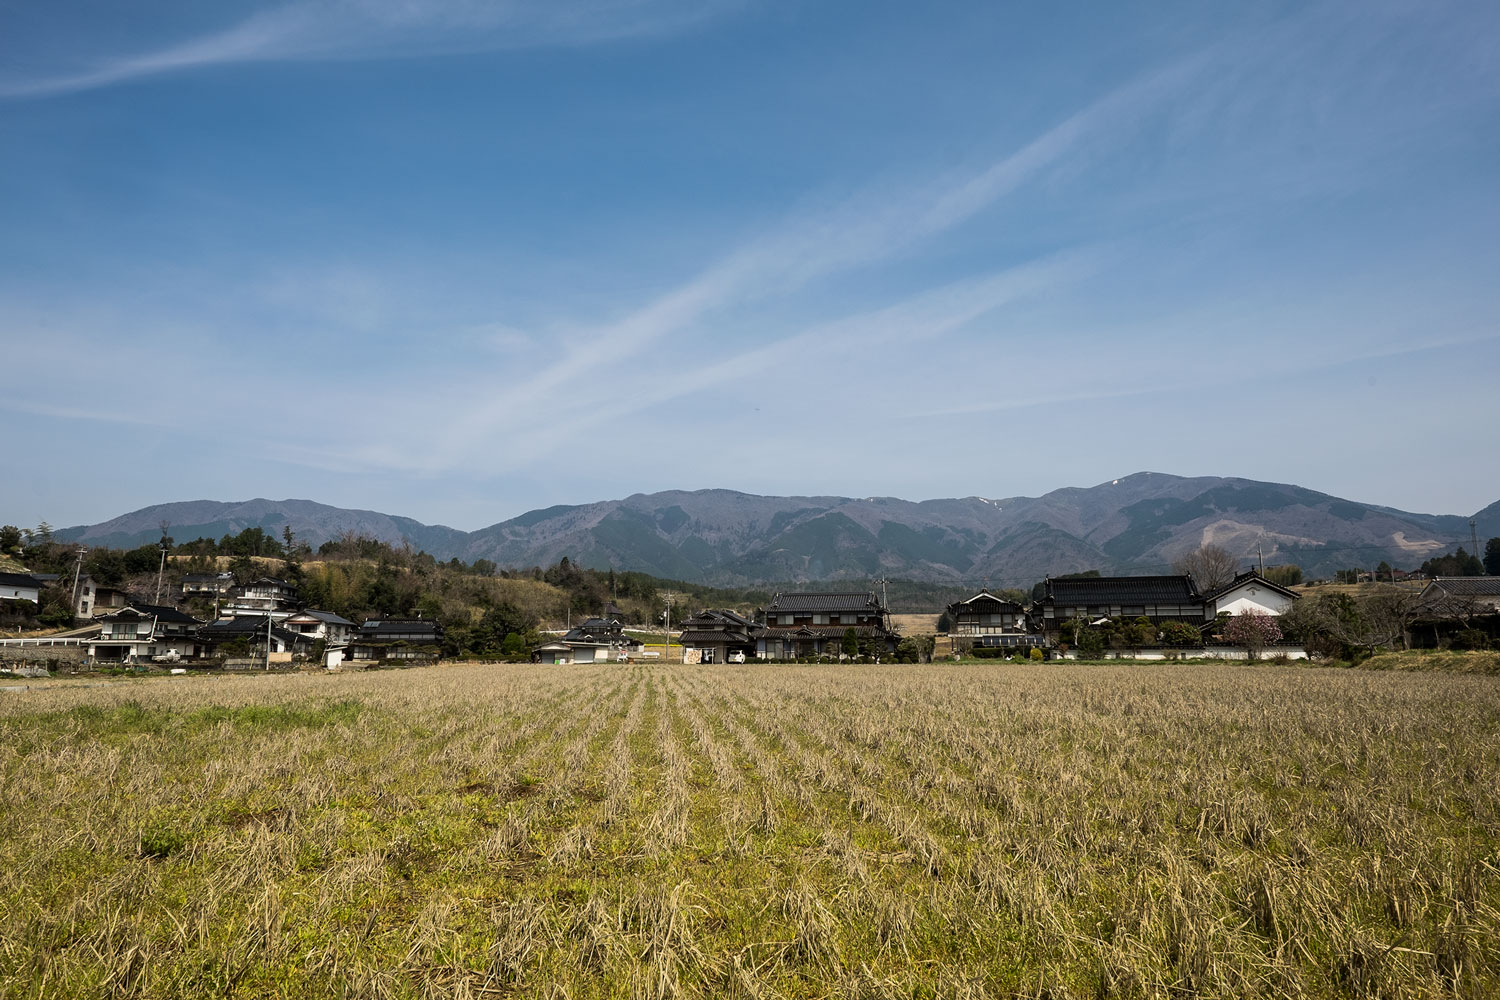 The countryside near Okayama and the mountains in the background